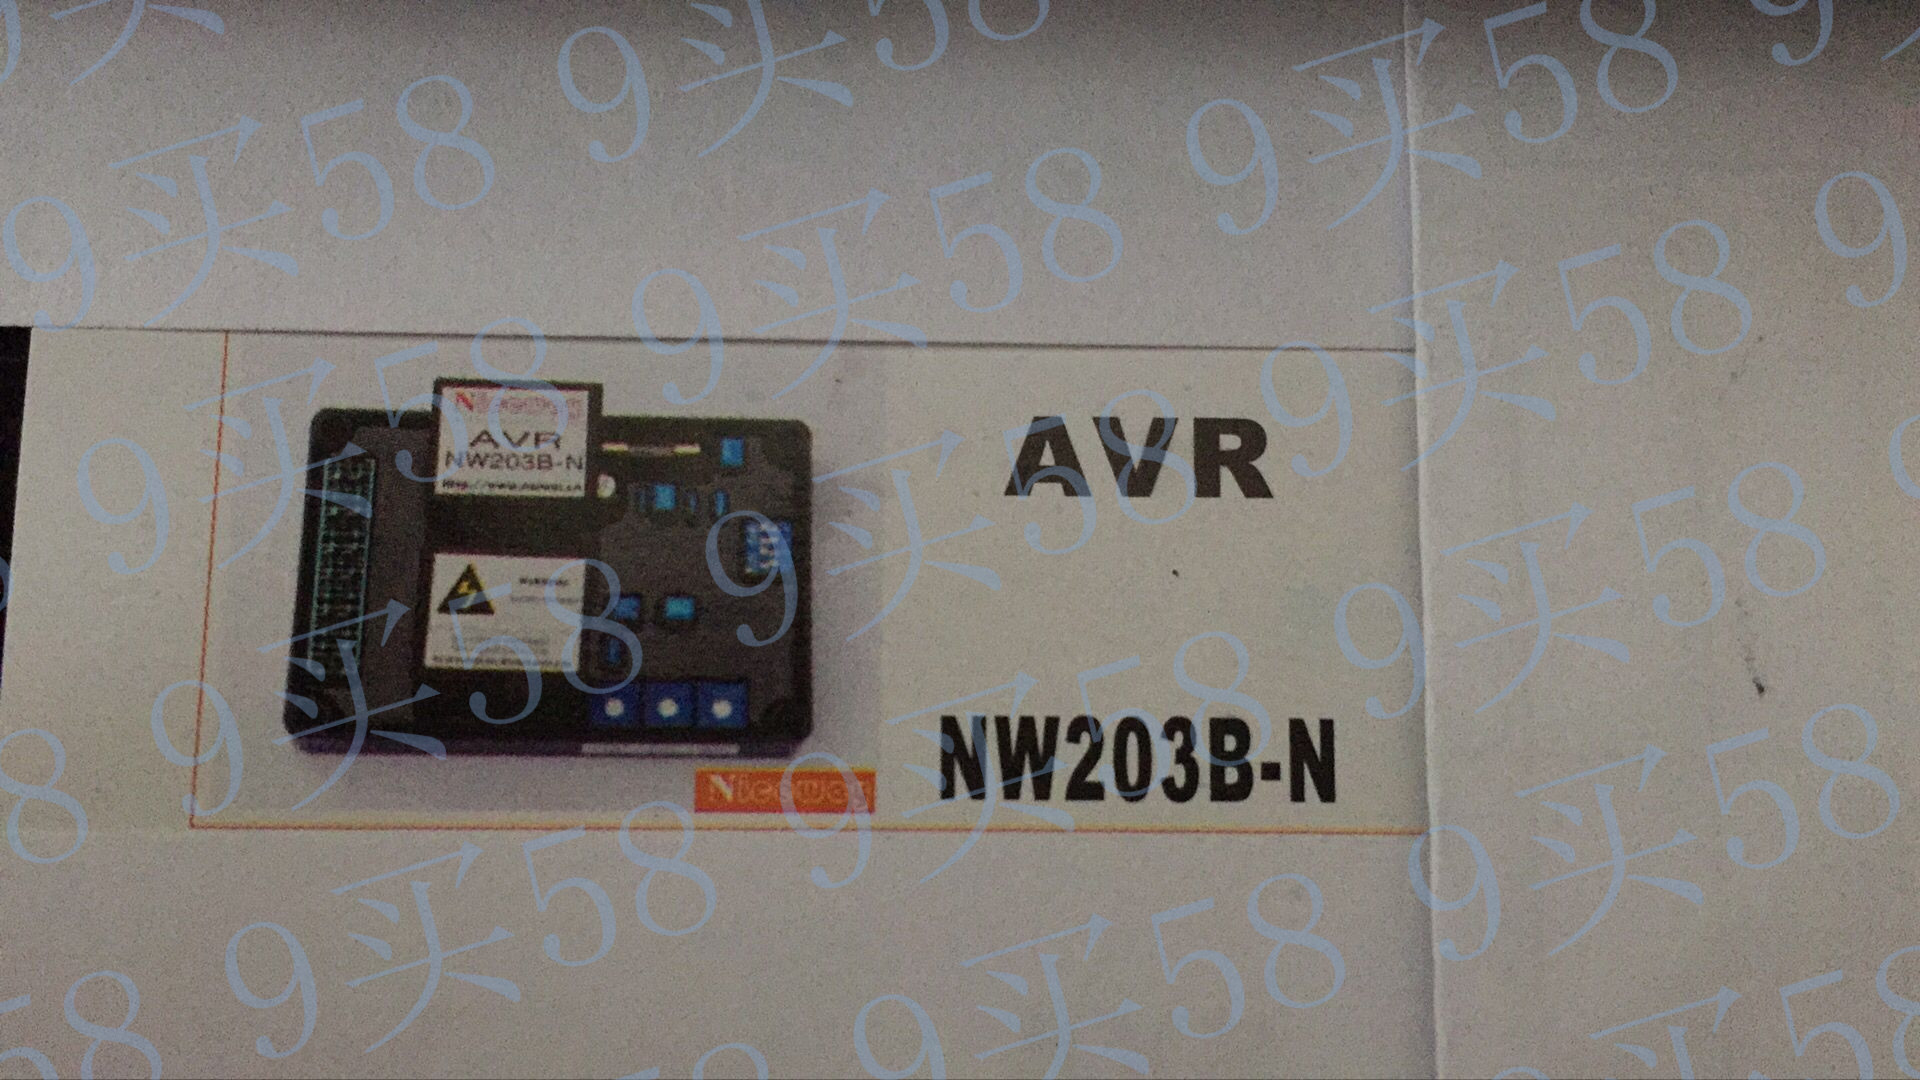 NW203B-N brushless generator automatic voltage regulator, AVR voltage regulator board, the original genuine